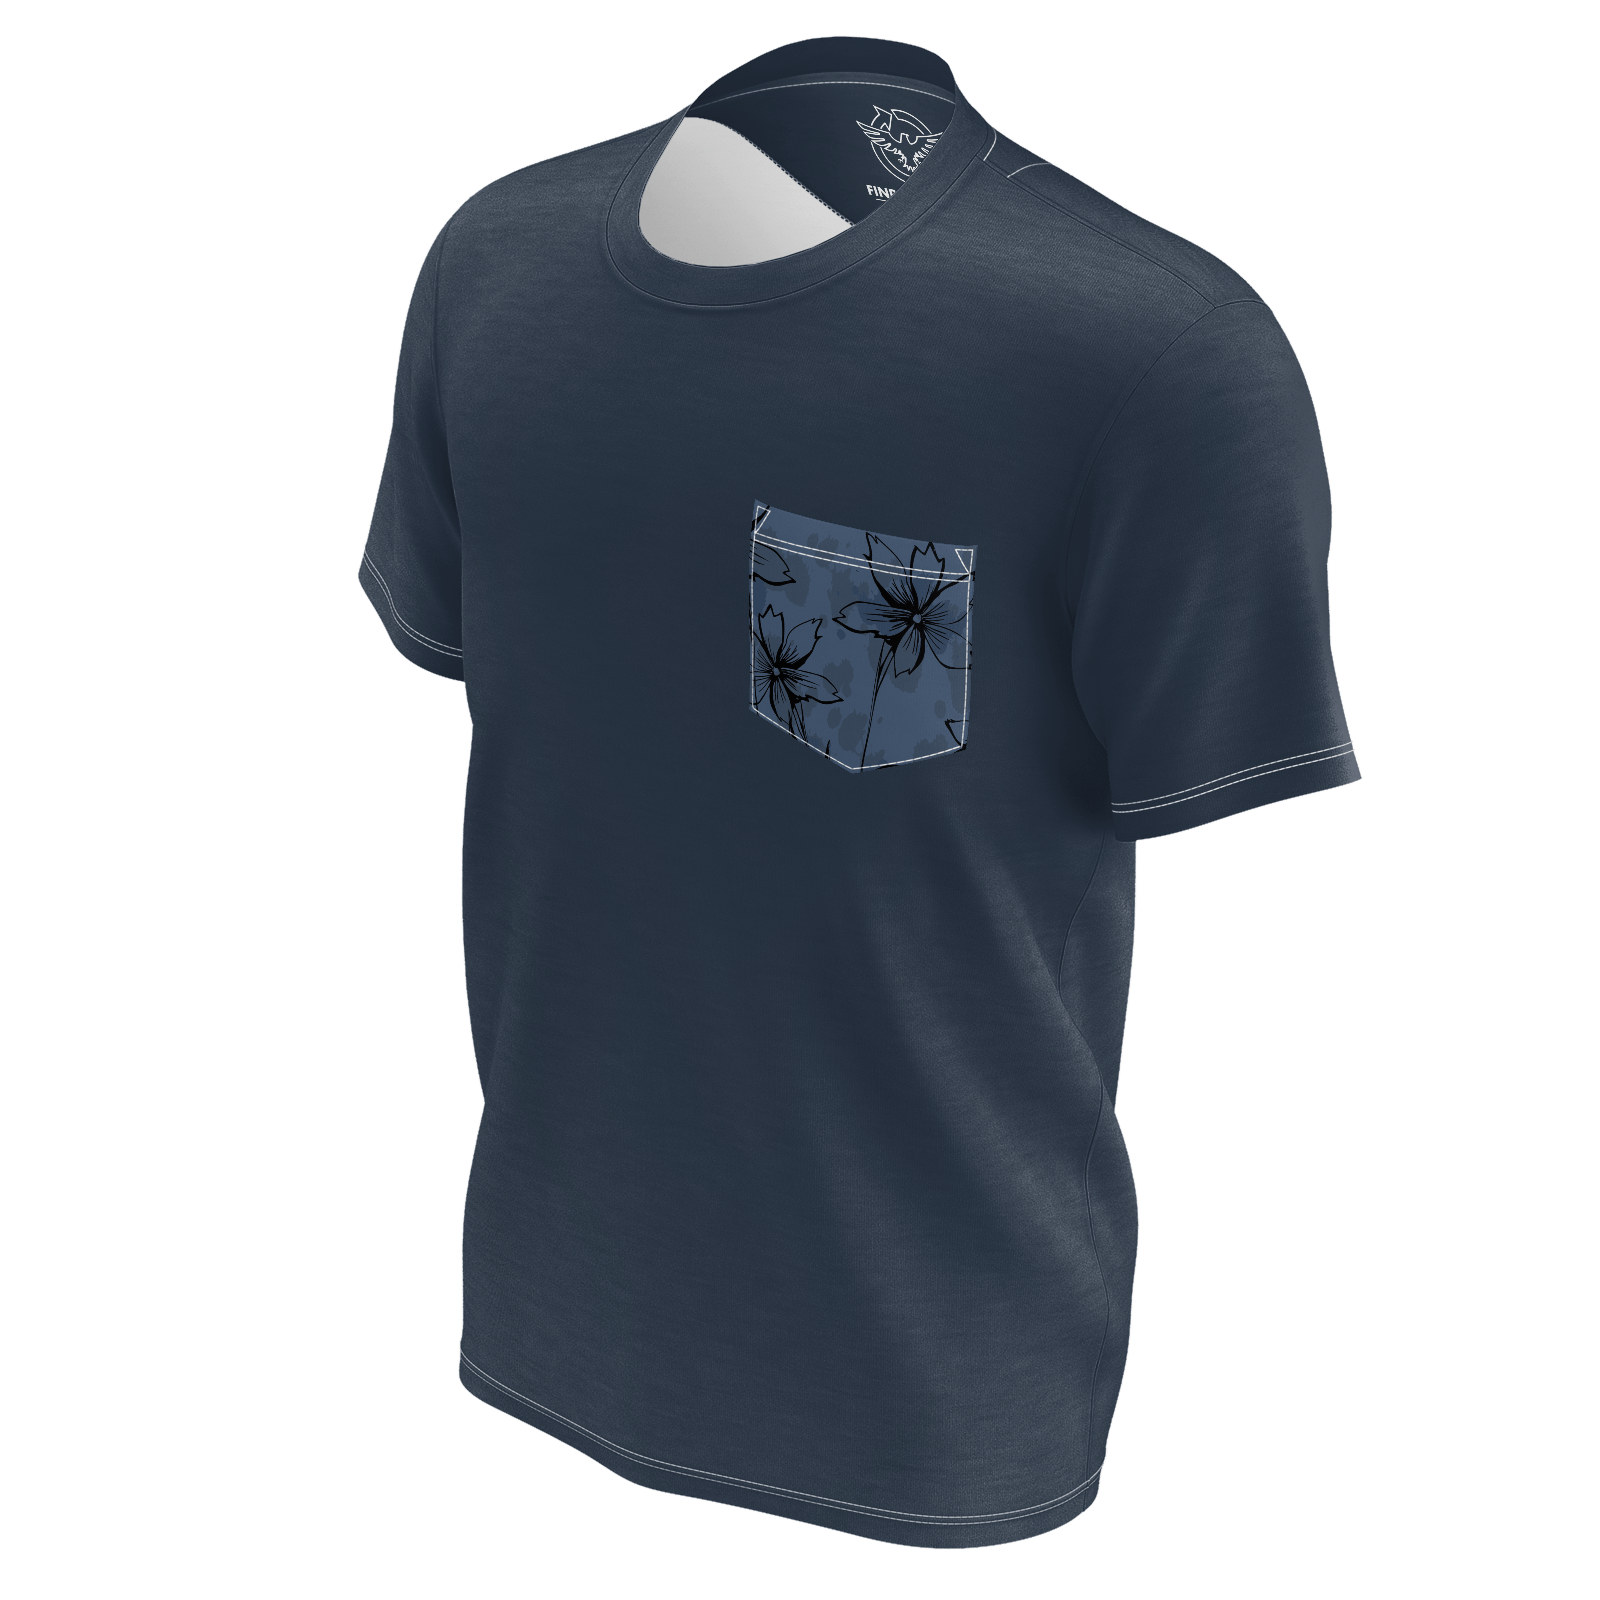 Men's Pacific Supply Sustainable Navy Pocket Tee Shirt - Find Your Coast Supply Co.